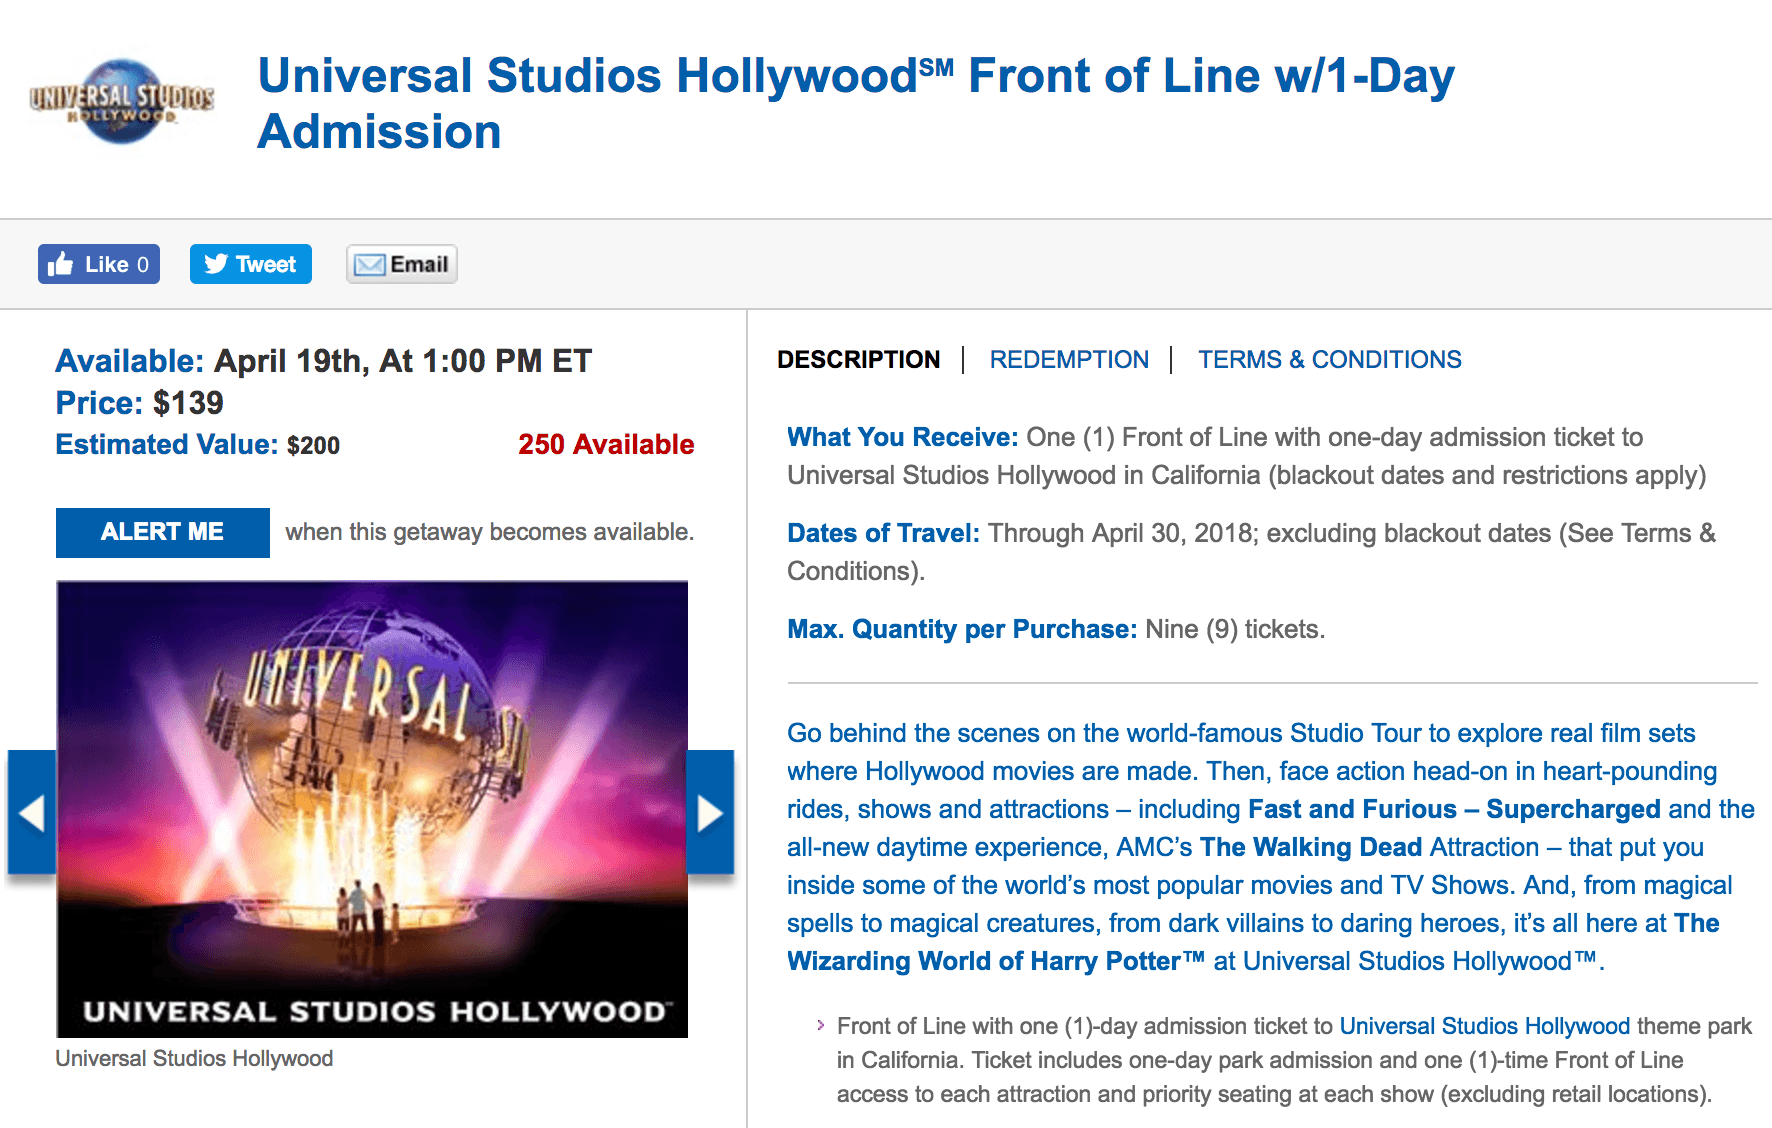 Discounted front-of-the-line passes to Universal Studios Hollywood